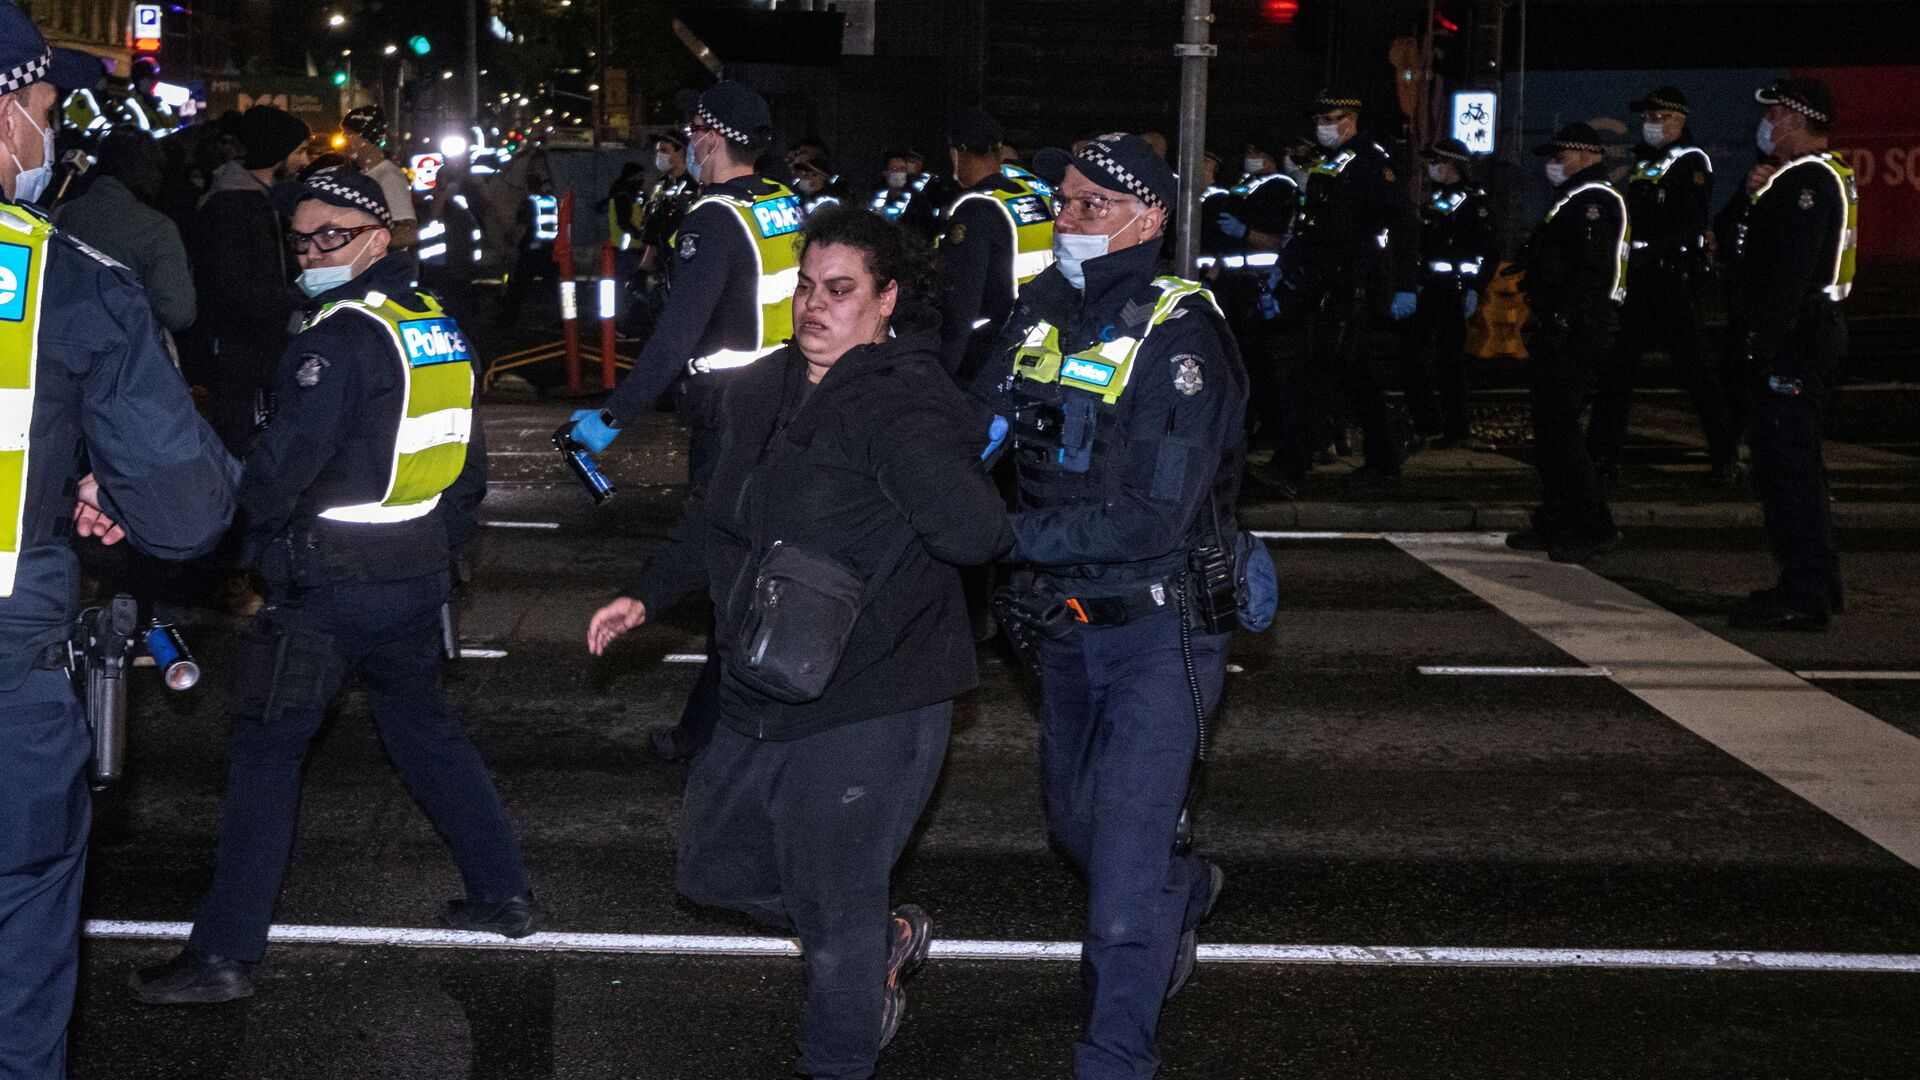 Protesters rally against a COVID-19 lockdown in Melbourne - Sputnik International, 1920, 18.09.2021